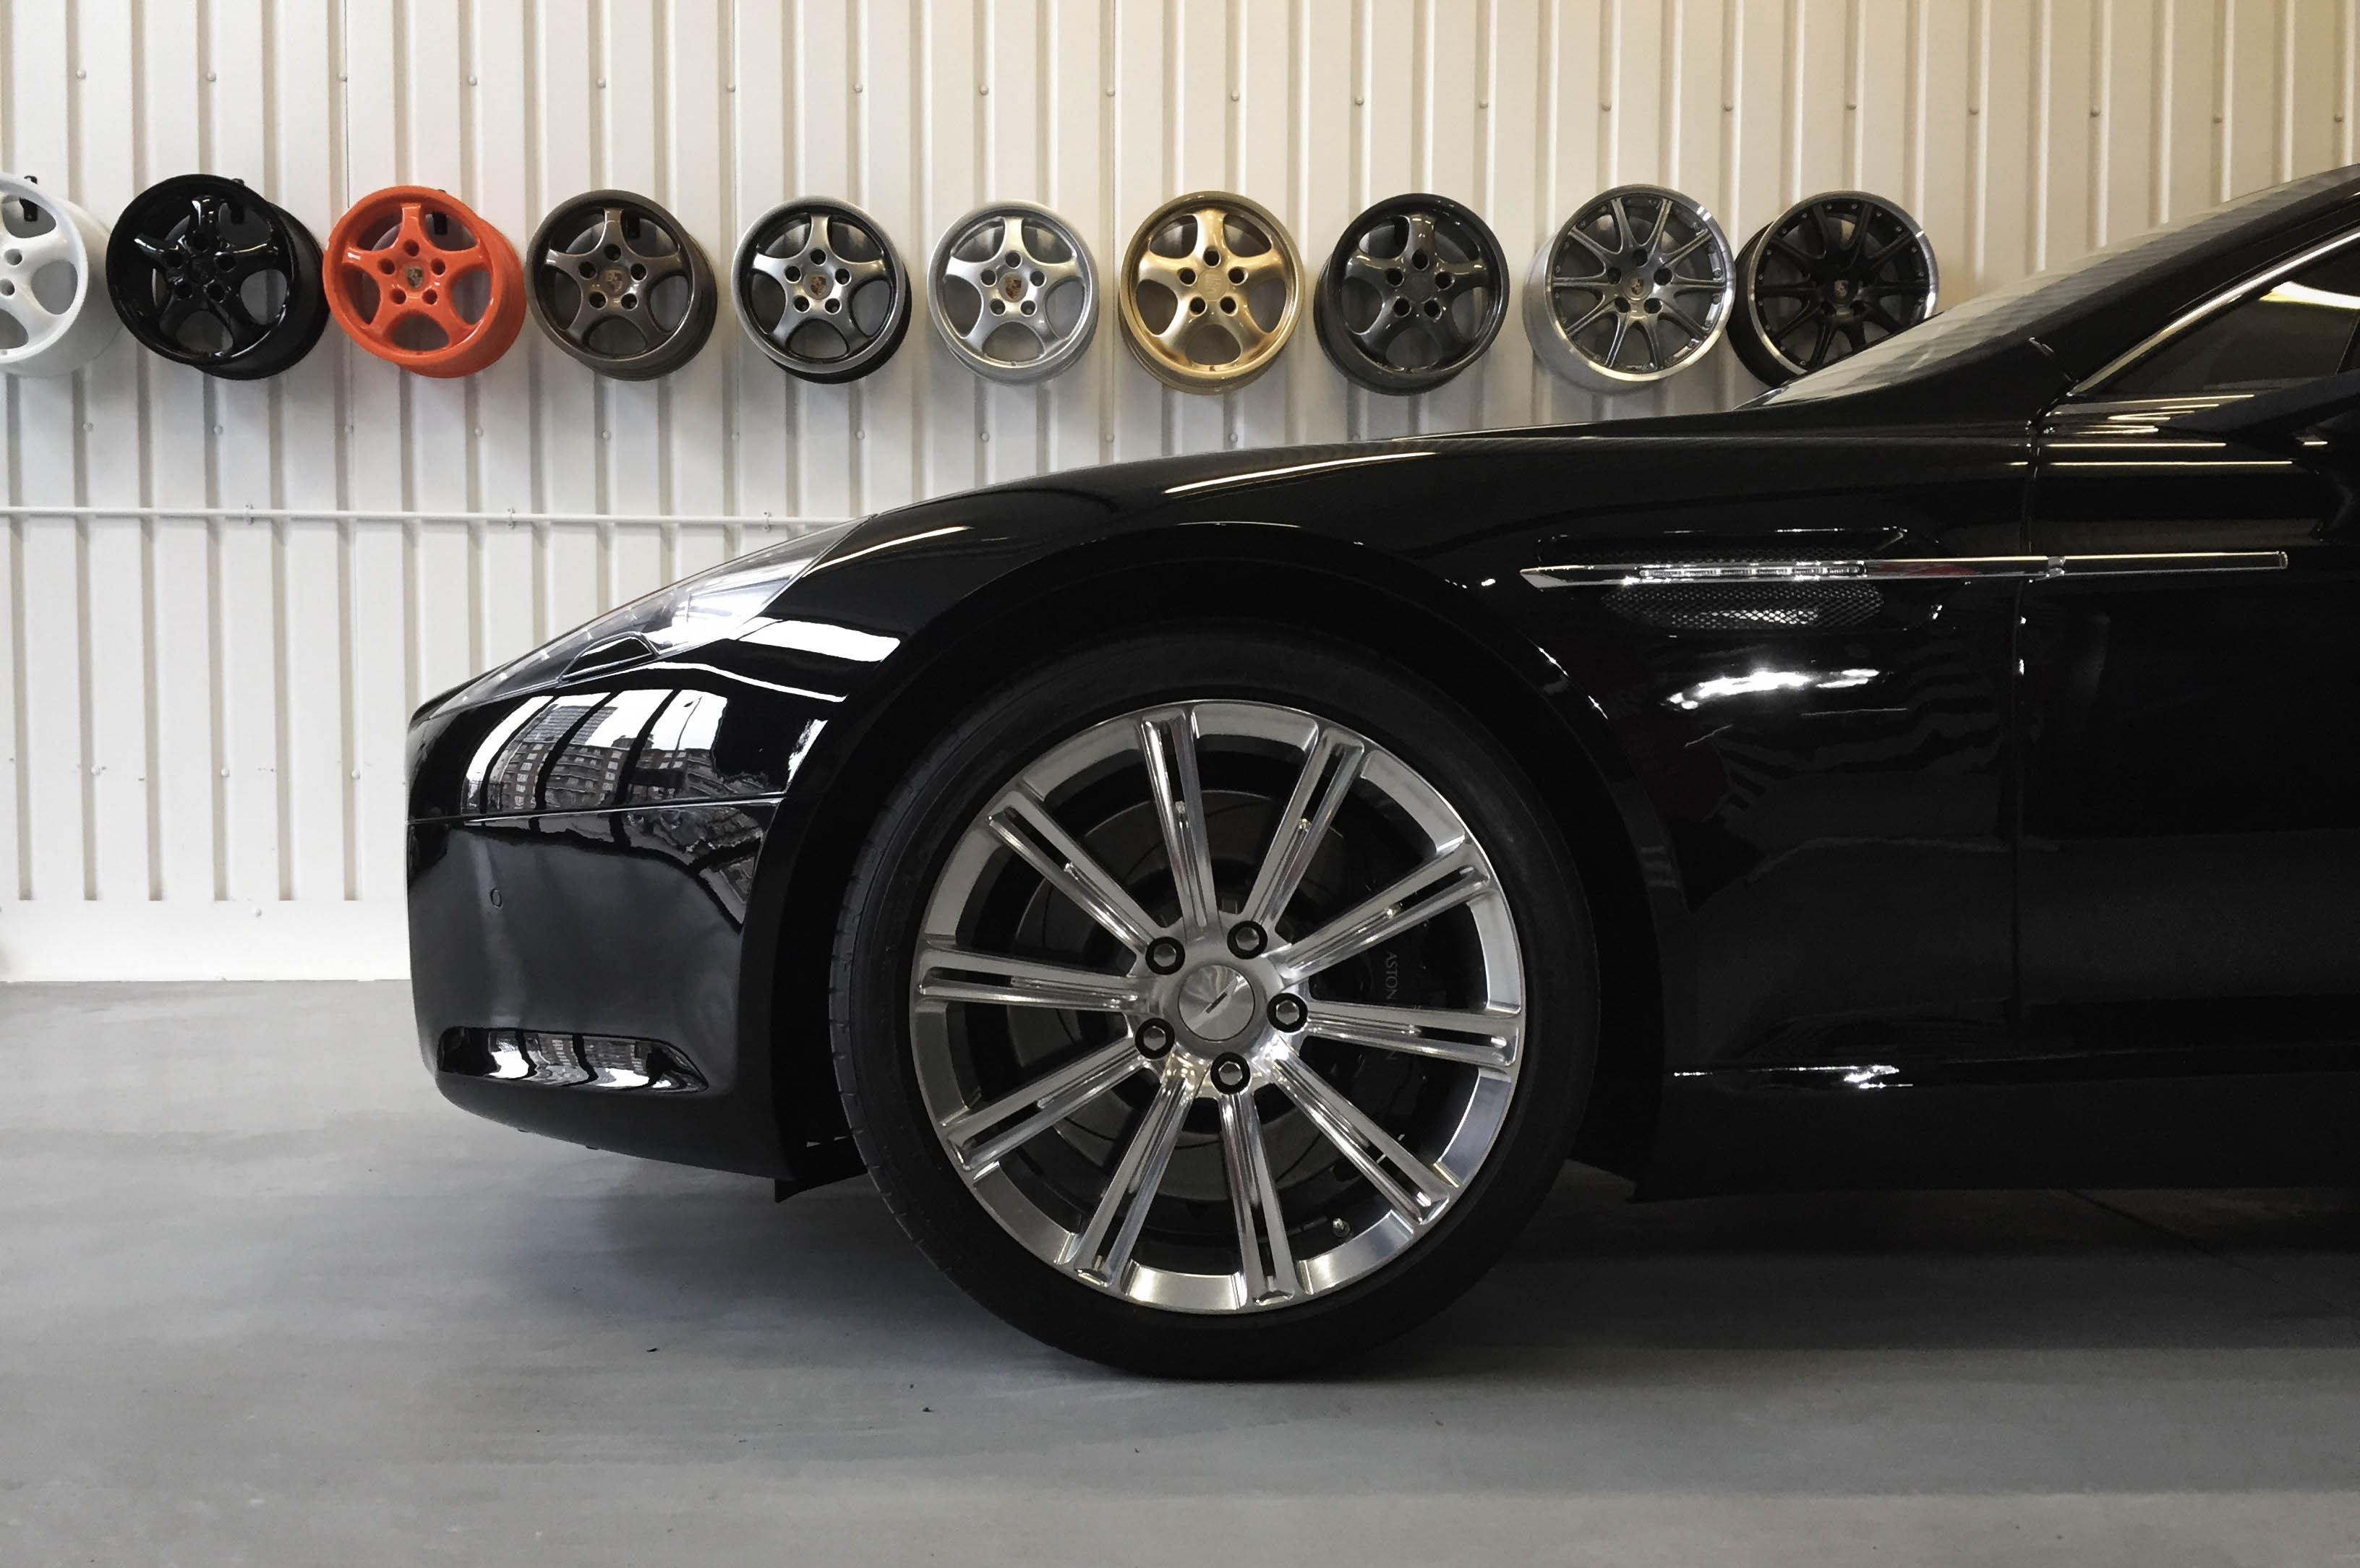 Aston Martin Rapide – Wheel detail